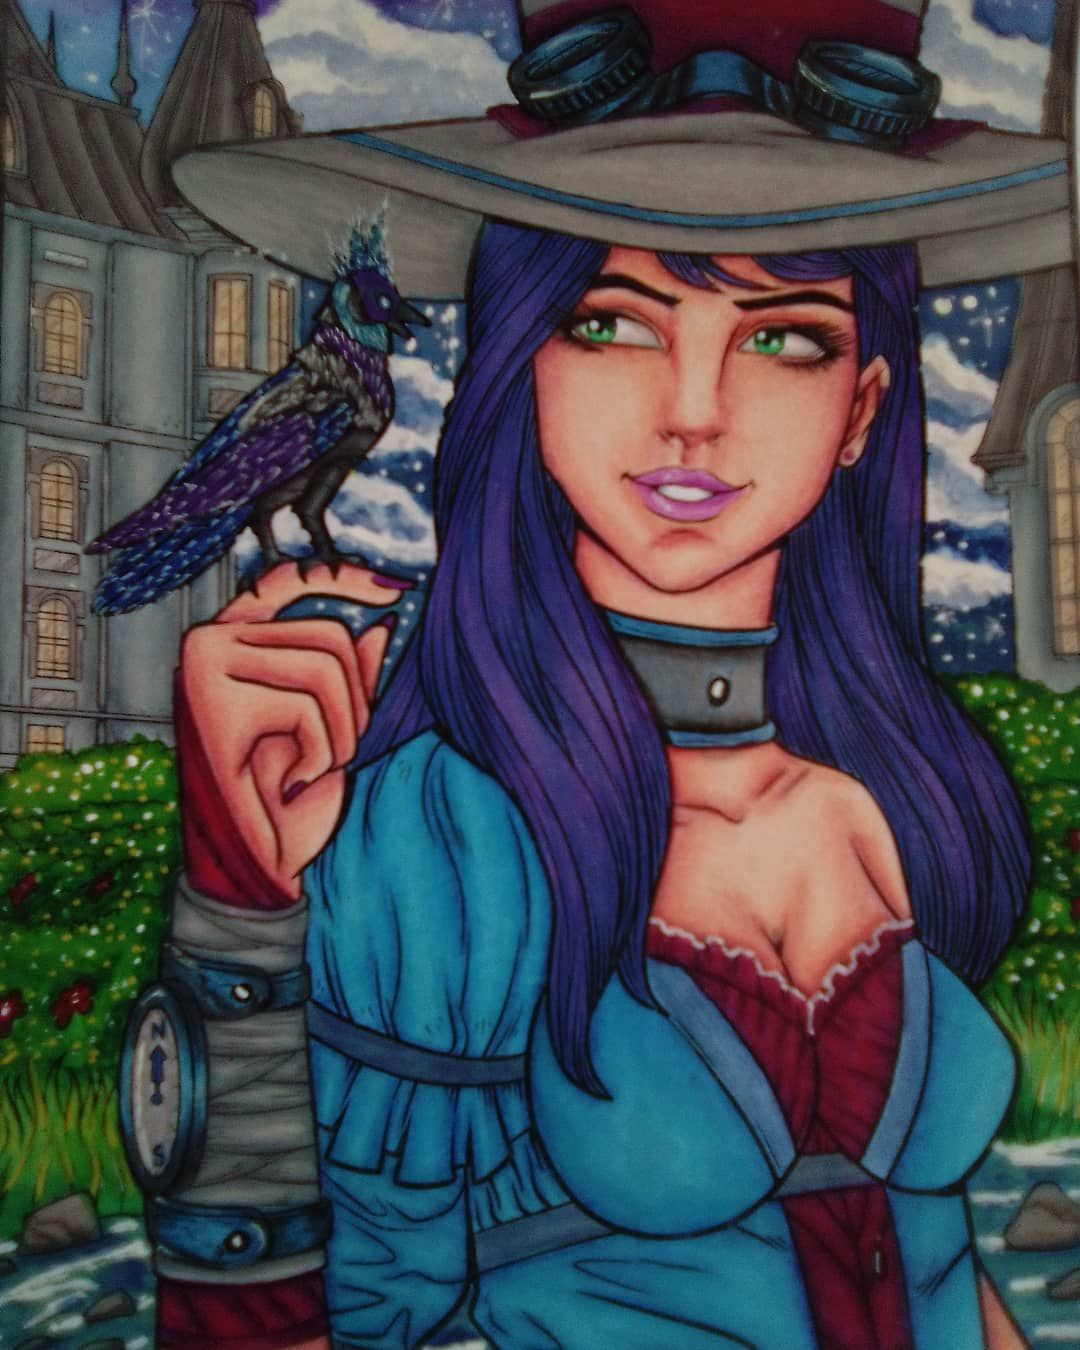 Colourgem On Instagram Steampunk By Jade Summer Prismacolour Gel Pen And Watercolours Jadesummercoloring Colormaniagroup Adultcoloring